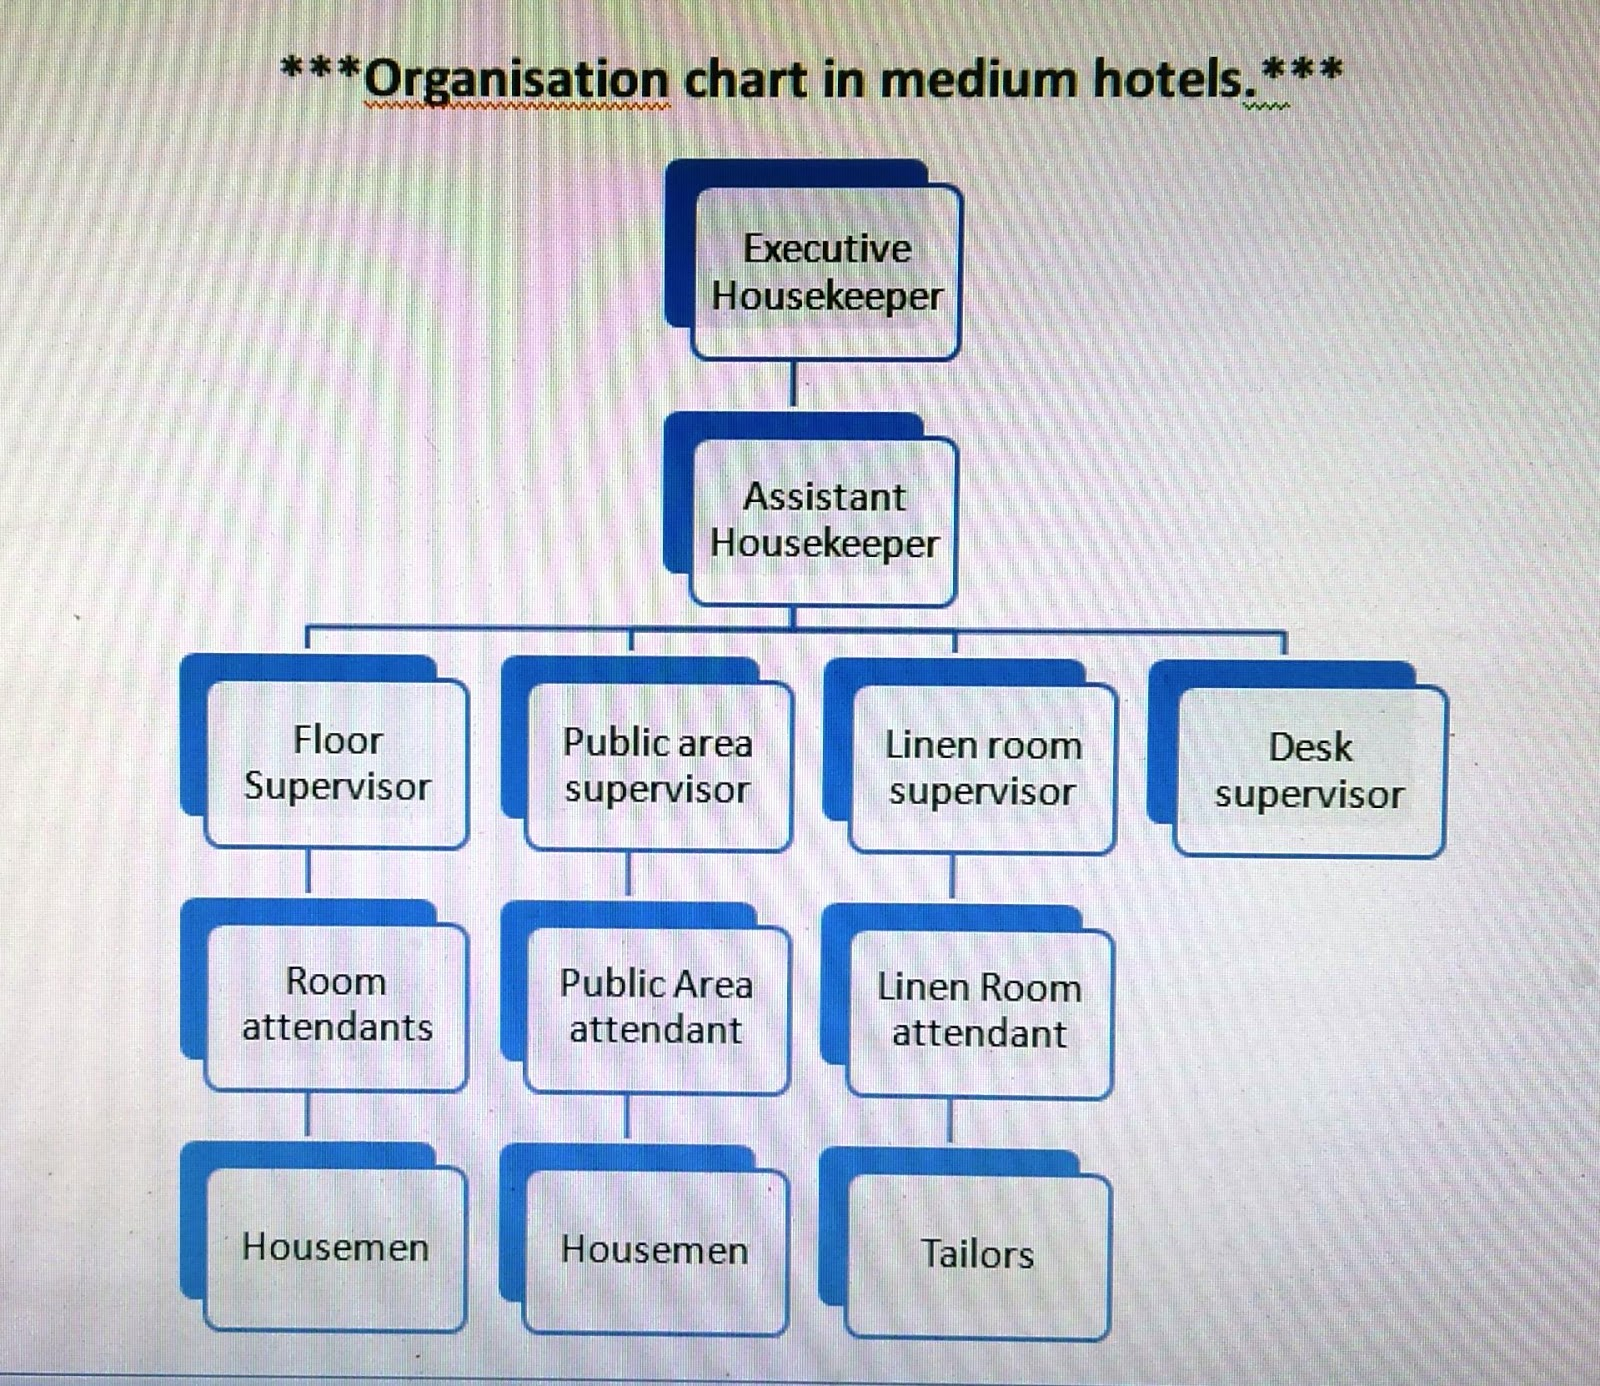 Organizational structure of front office department image for Hotel organizational chart template